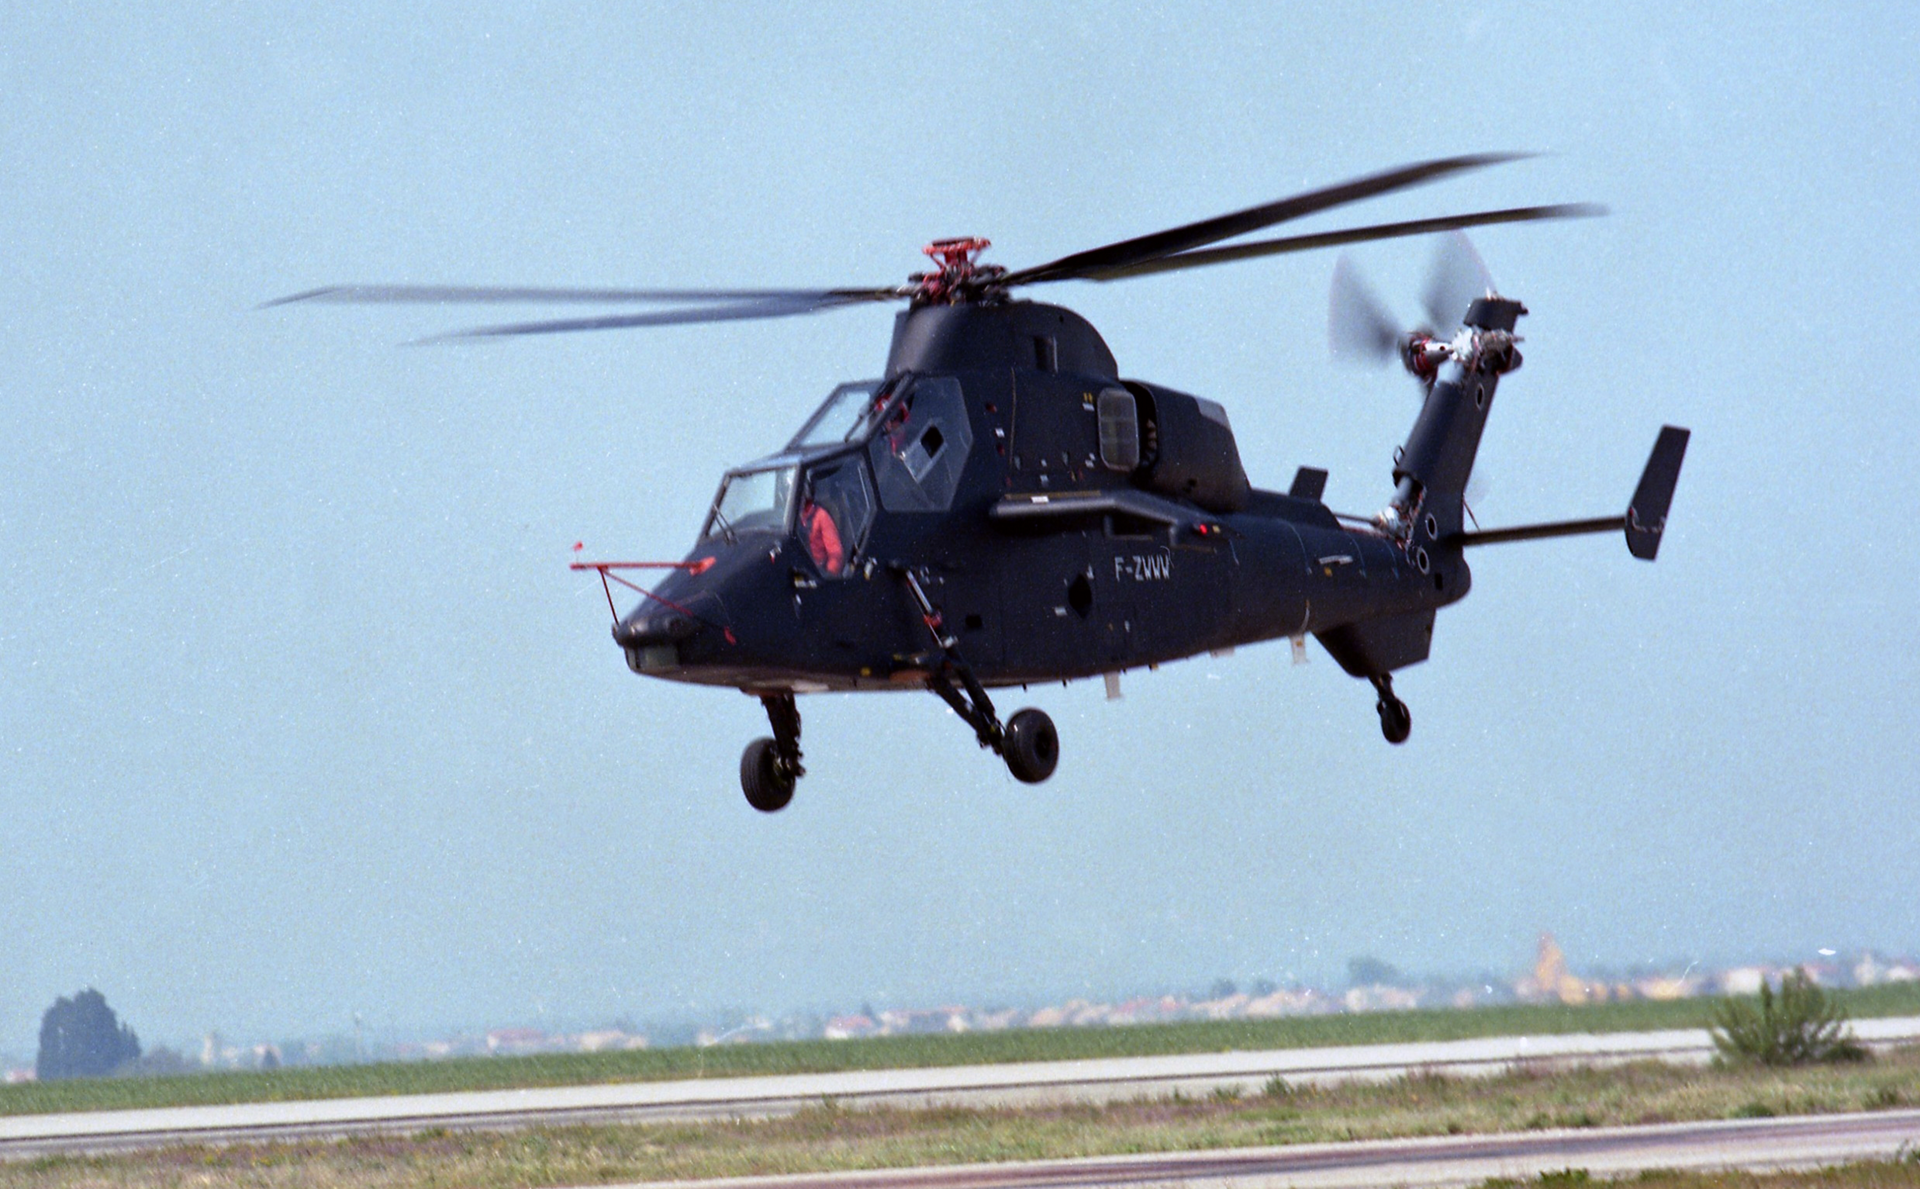 The Tiger combat helicopter is shown during its maiden flight.